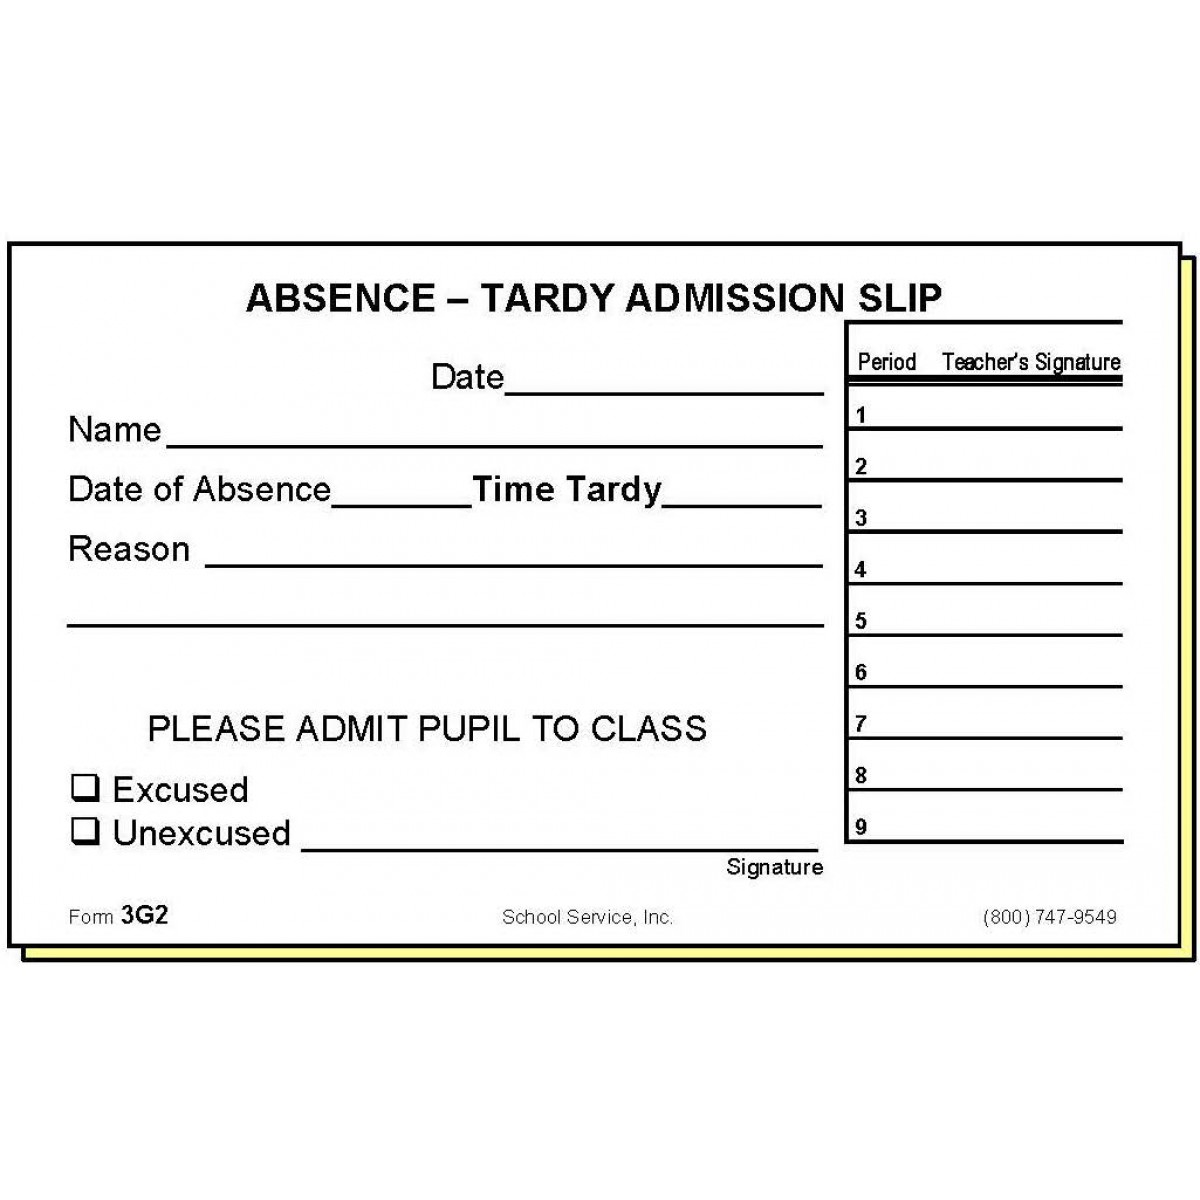 3g2 two part absence tardy admission slip carbonless forms thecheapjerseys Images